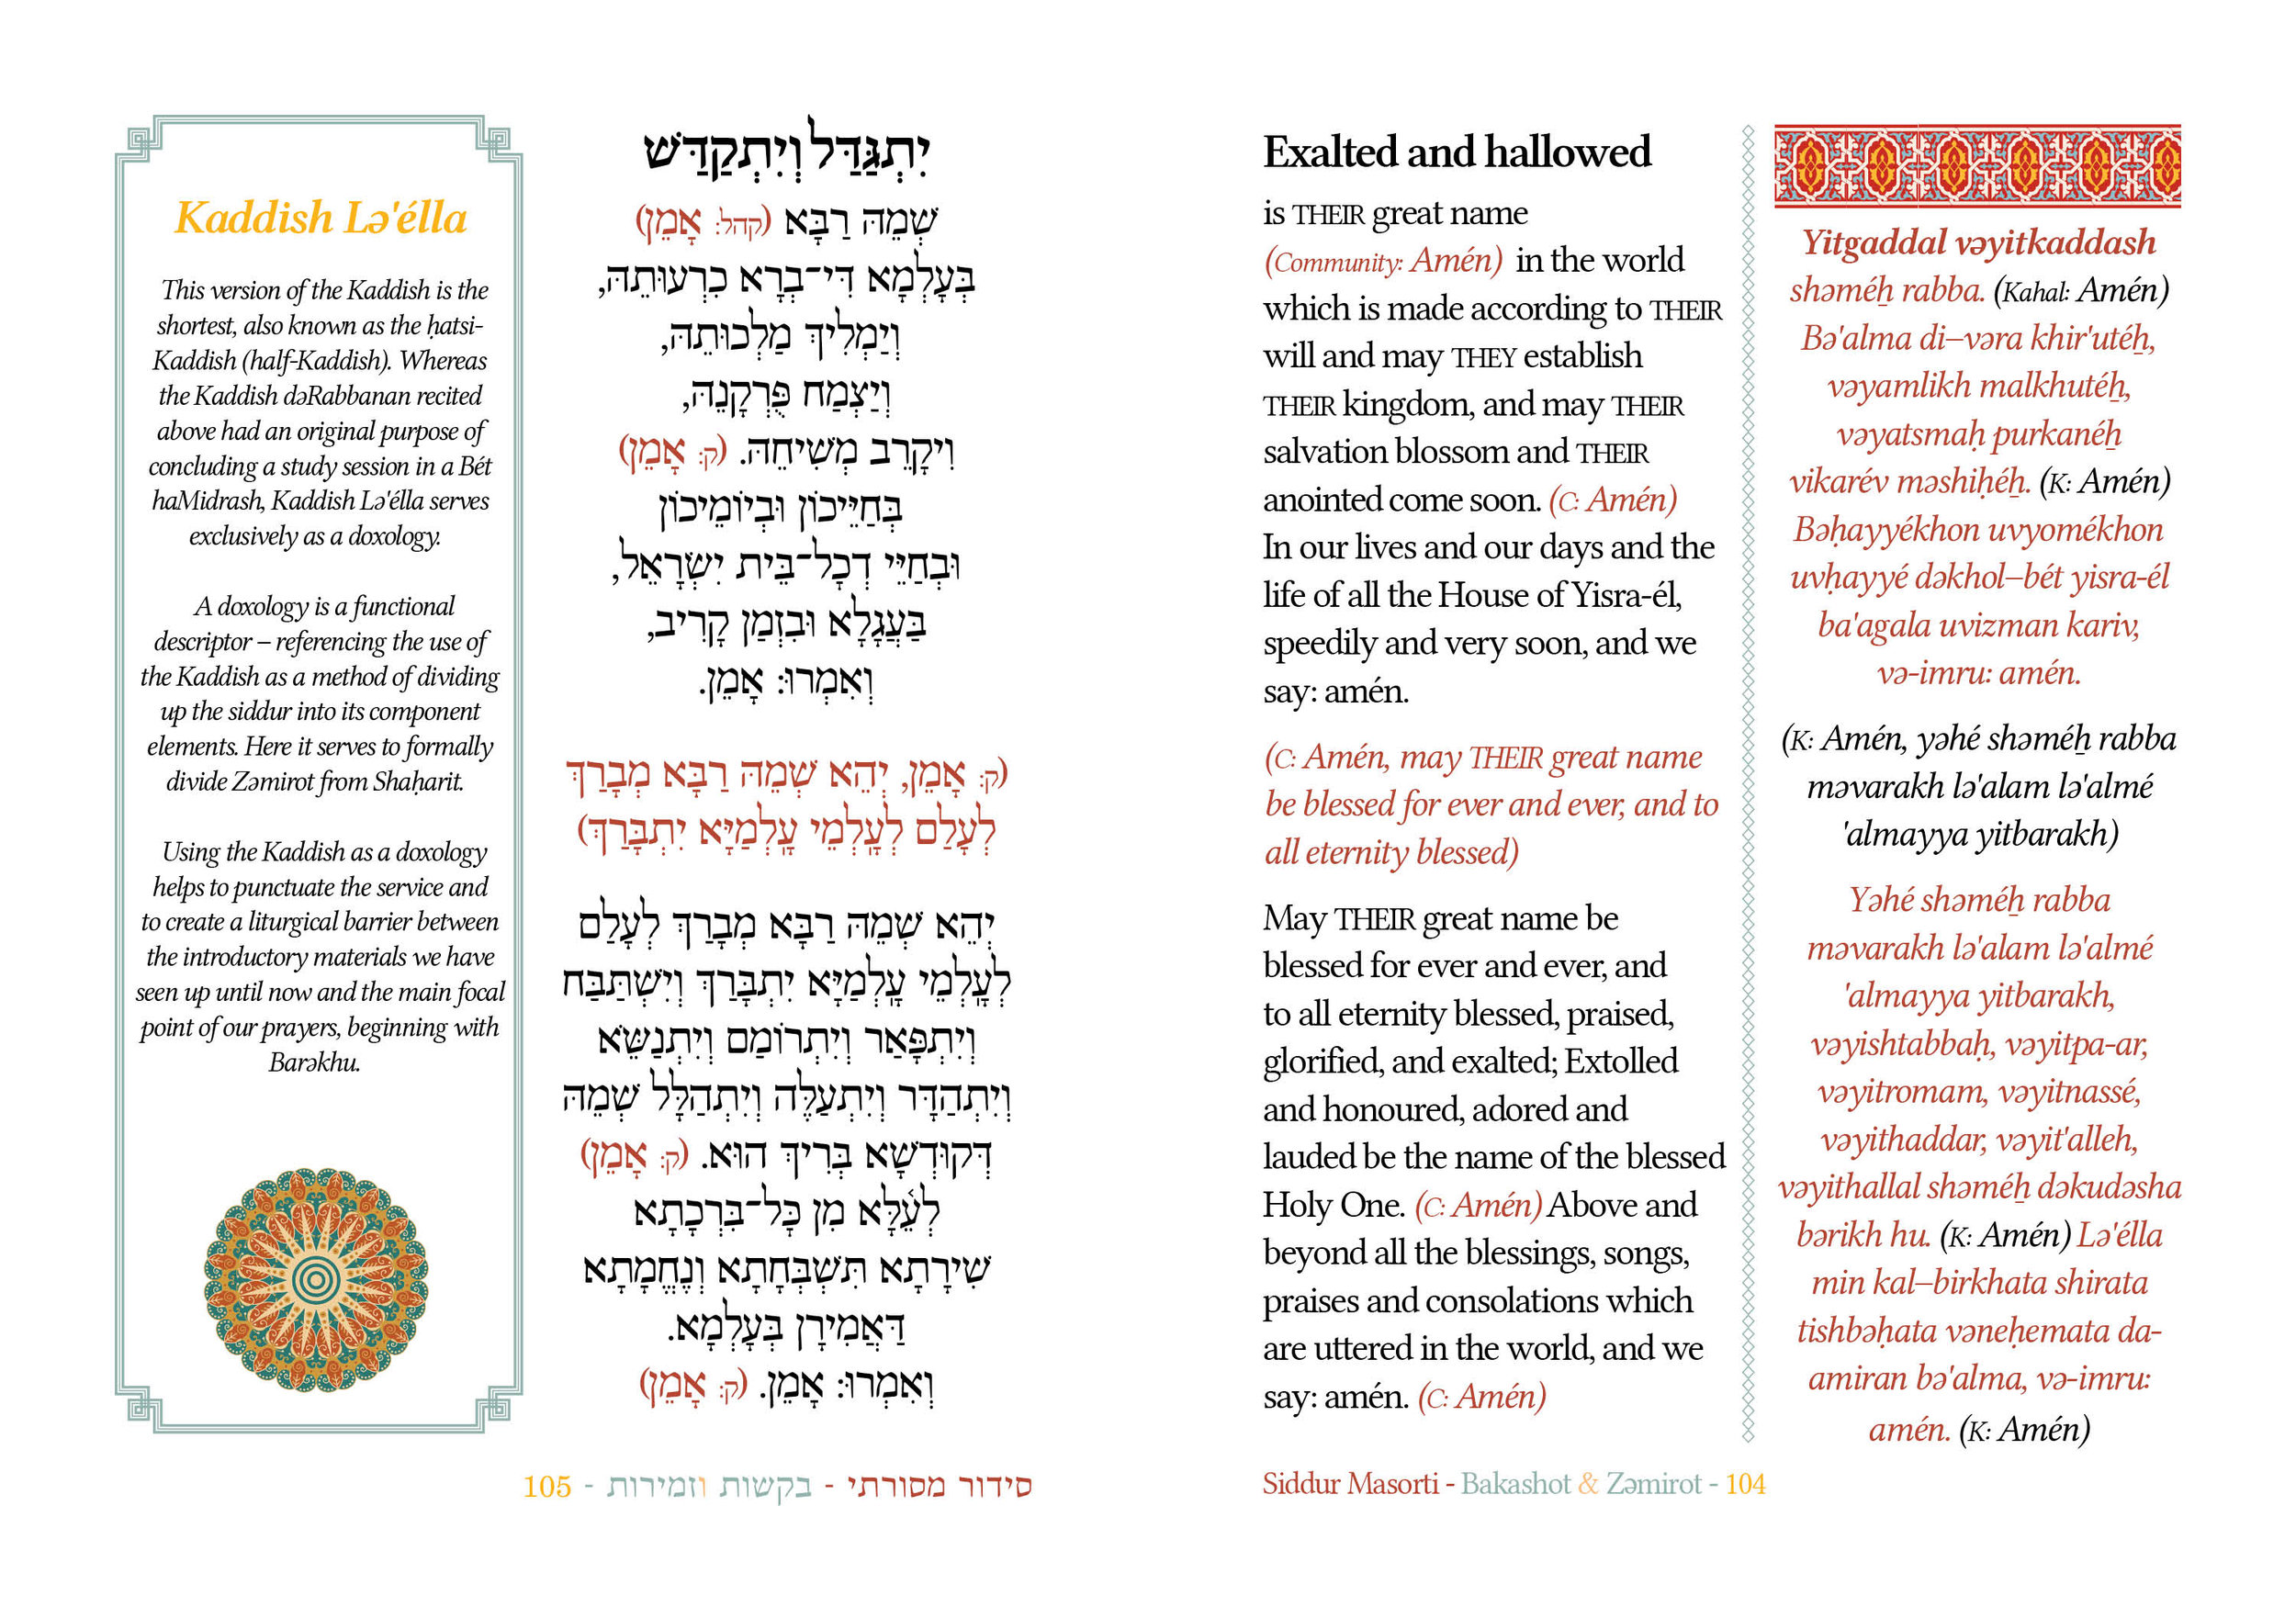 One of the many recent additions has been more information about what a community says versus an individual. Whereas when this project began we only planned for the individual worshipper, there has since developed the possibility of communal use (see below) and we've tried as a result to include more that describes the interactions between the two. This kaddish also helps illustrate the romanisation scheme.